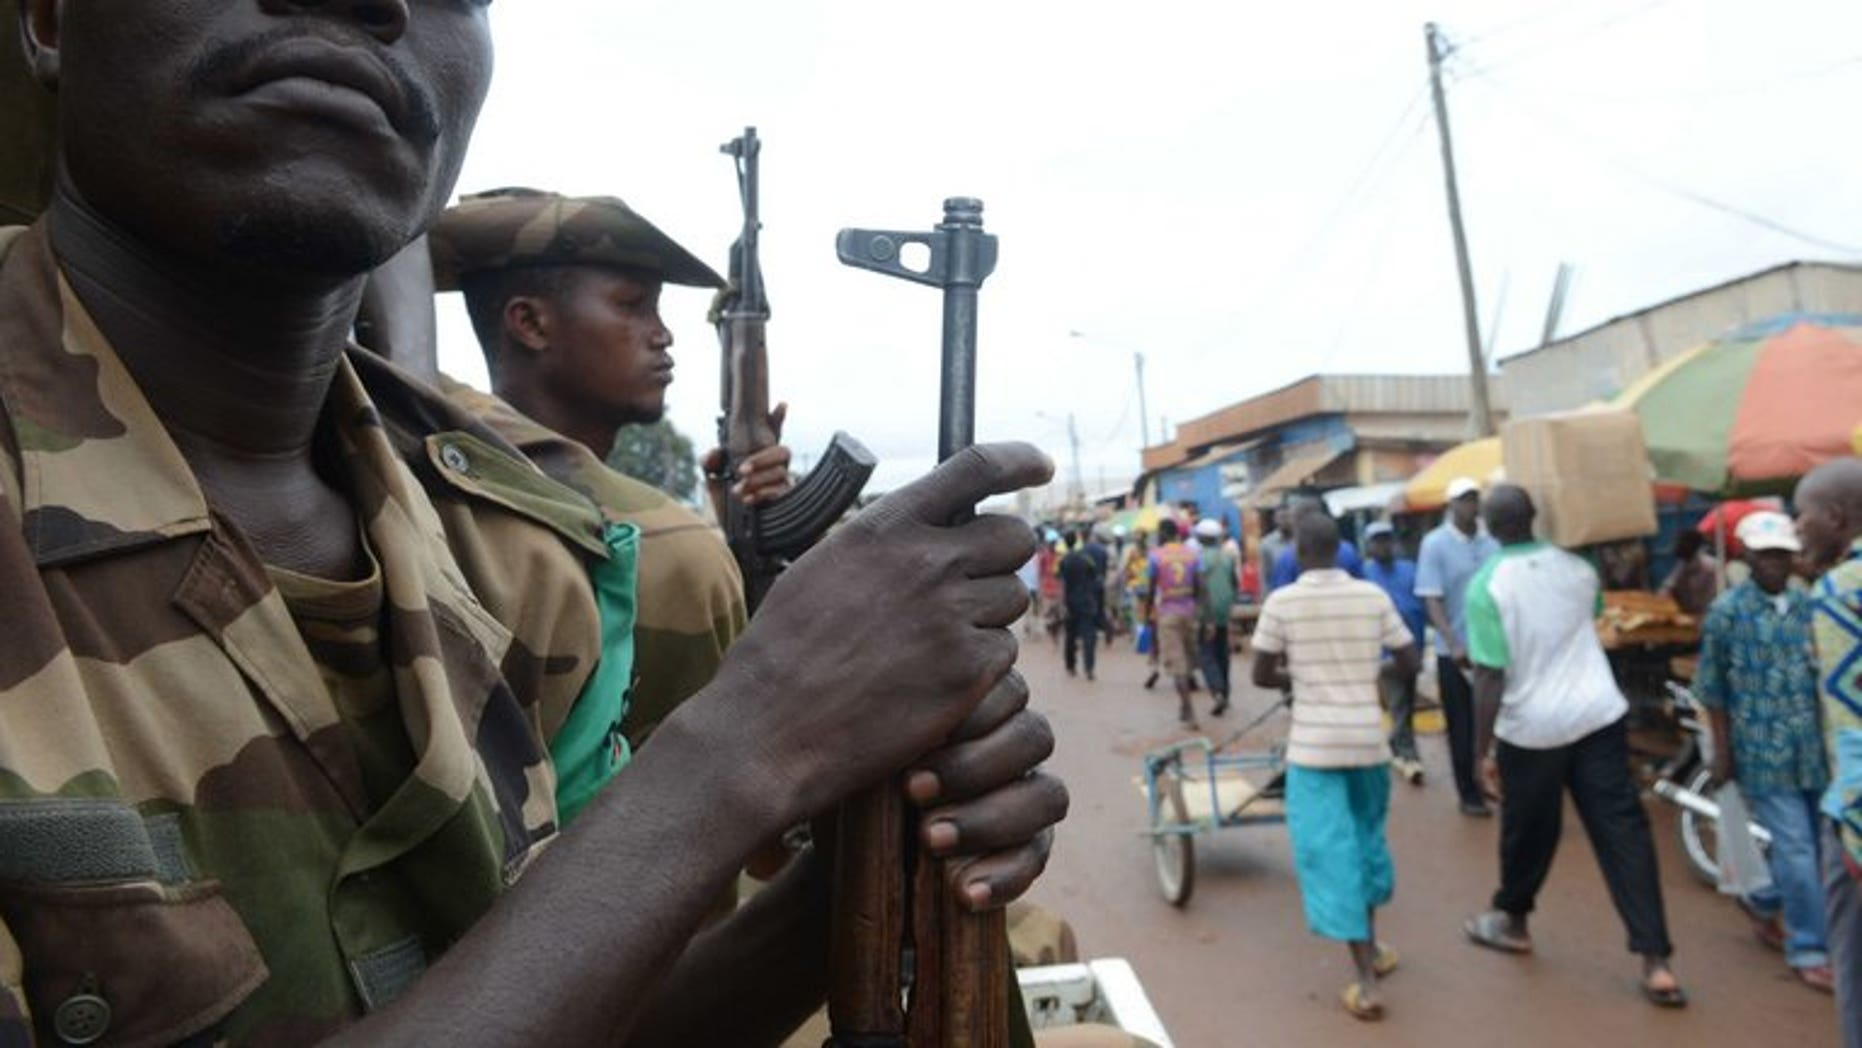 Members of the Multinational Force of Central Africa patrol on July 20 in Bangui. Armed clashes erupted in Bangui as the new president's forces tried to disarm supporters of former leader Francois Bozize, a military source said on Wednesday.